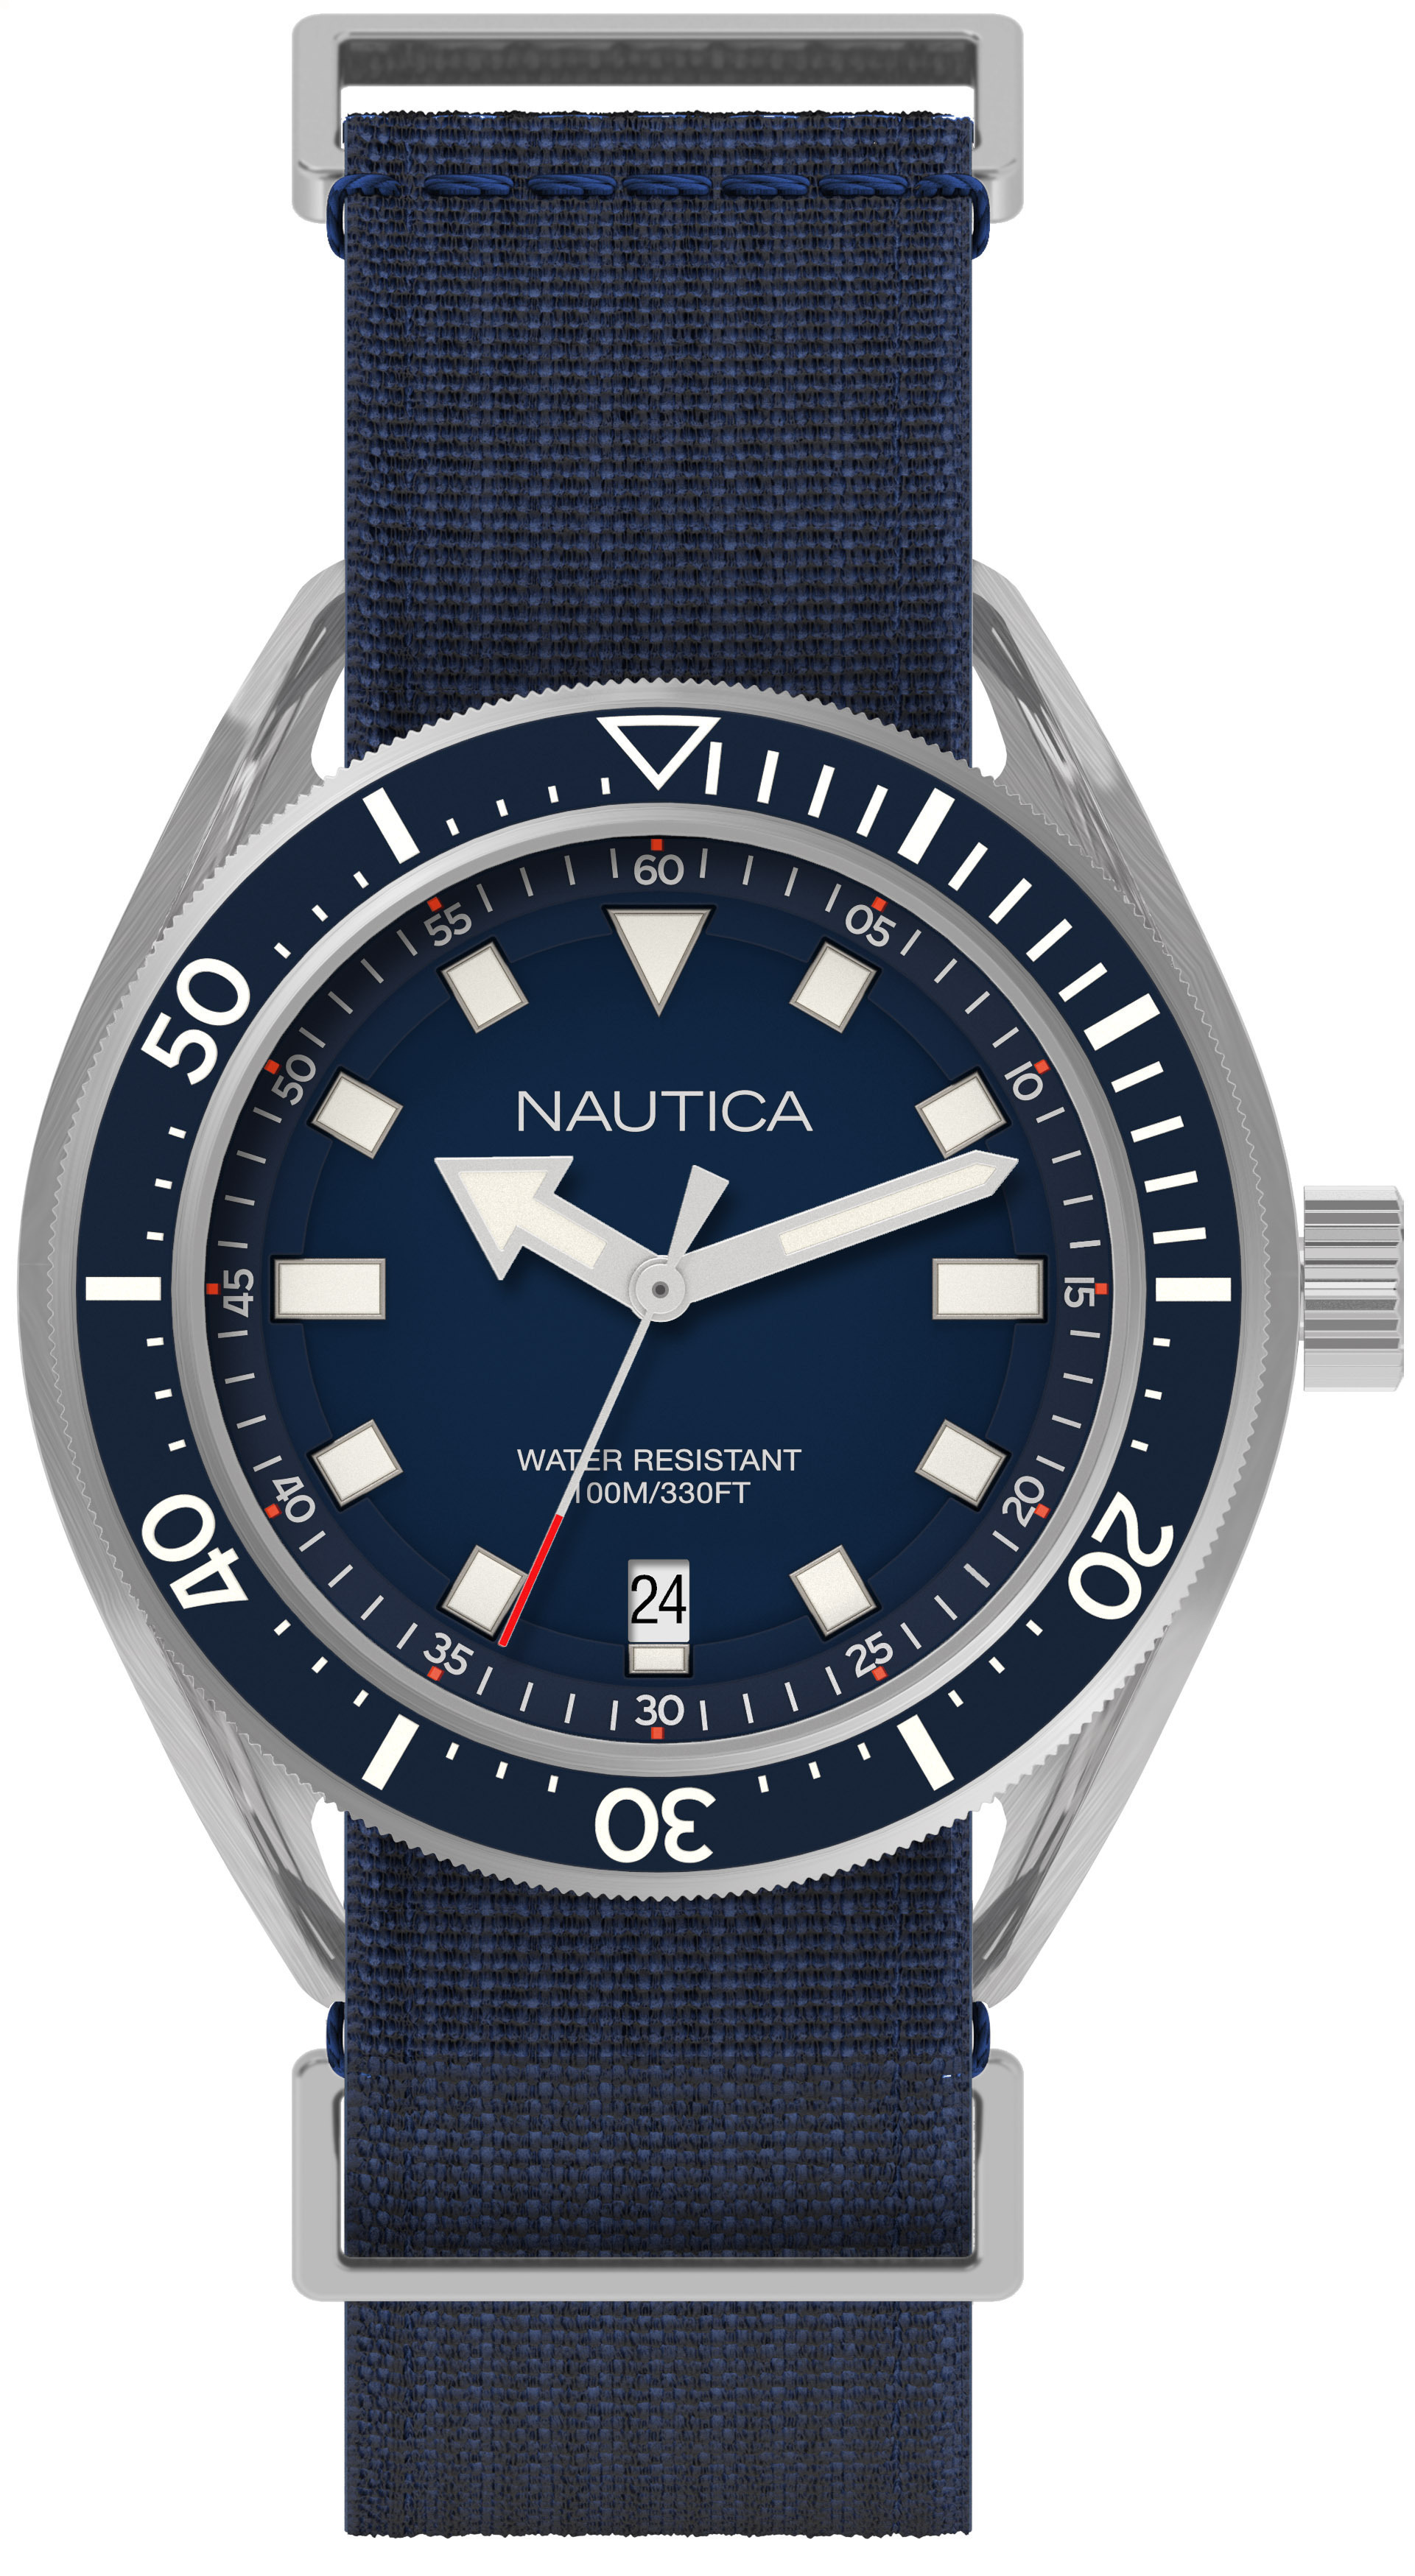 NAUTICA MEN'S WATCH PORTOFINO 45MM by Nautica